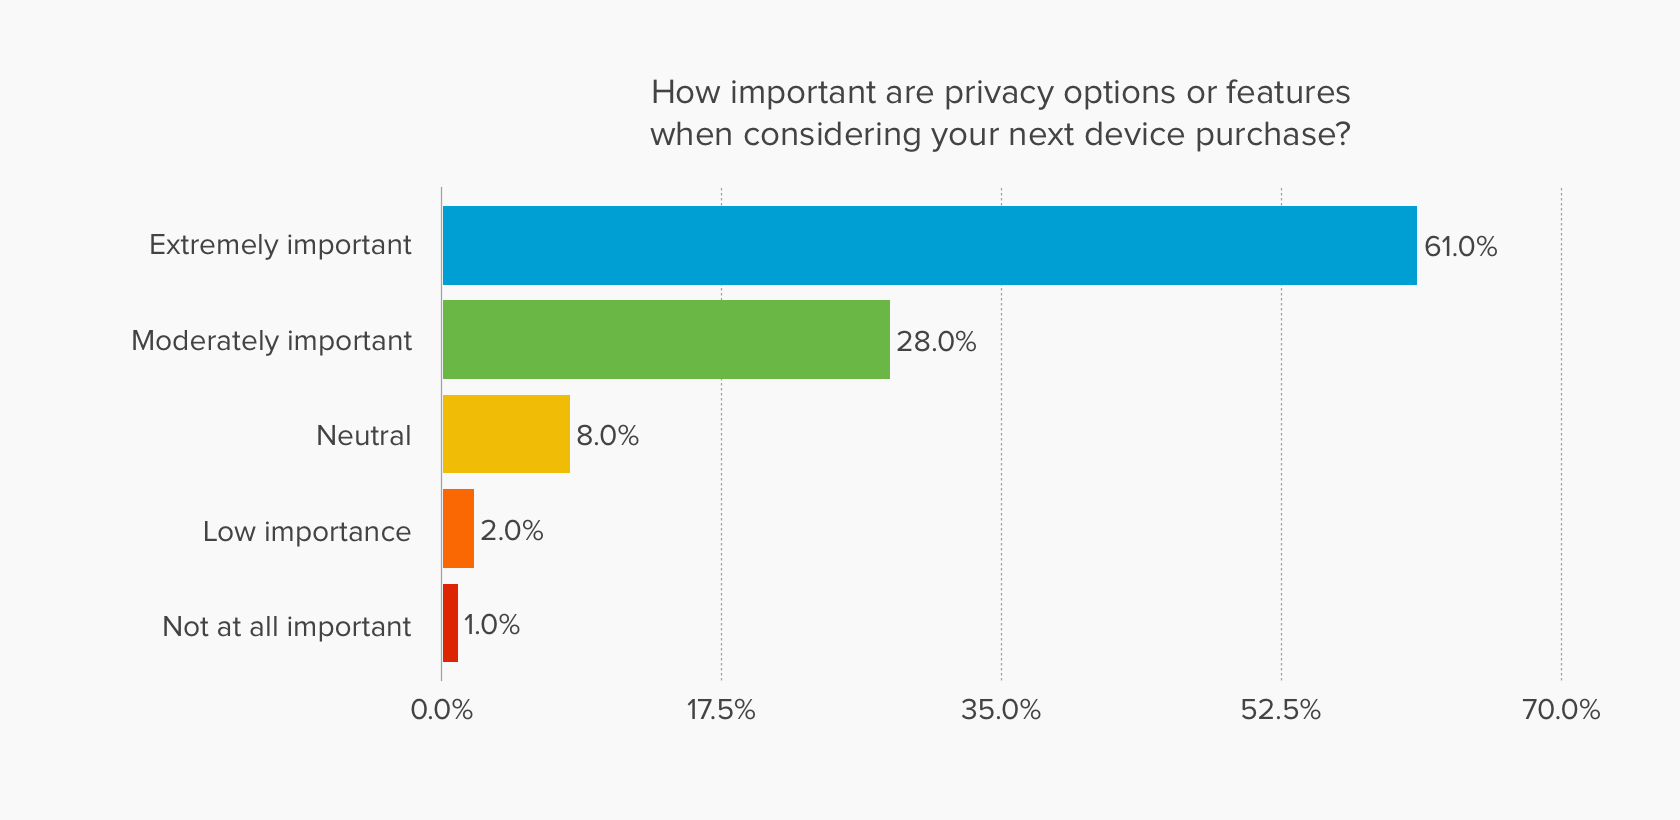 Chart showing that privacy options are extremely important for most people when considering buying a new device.